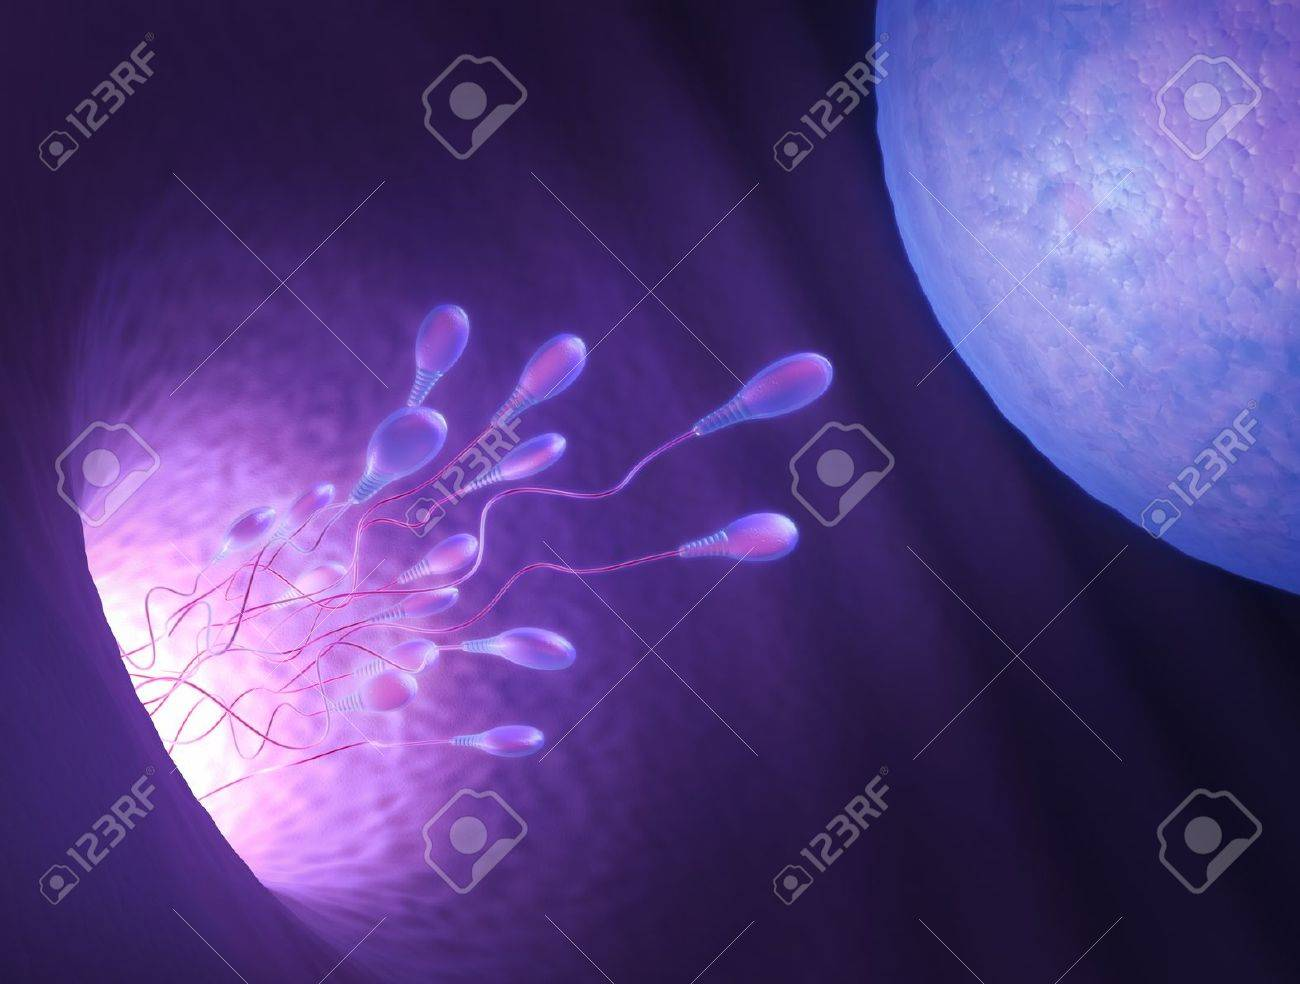 Stylized illustration of various sperm going to meet the egg in the process of human fertilization. - 10529429